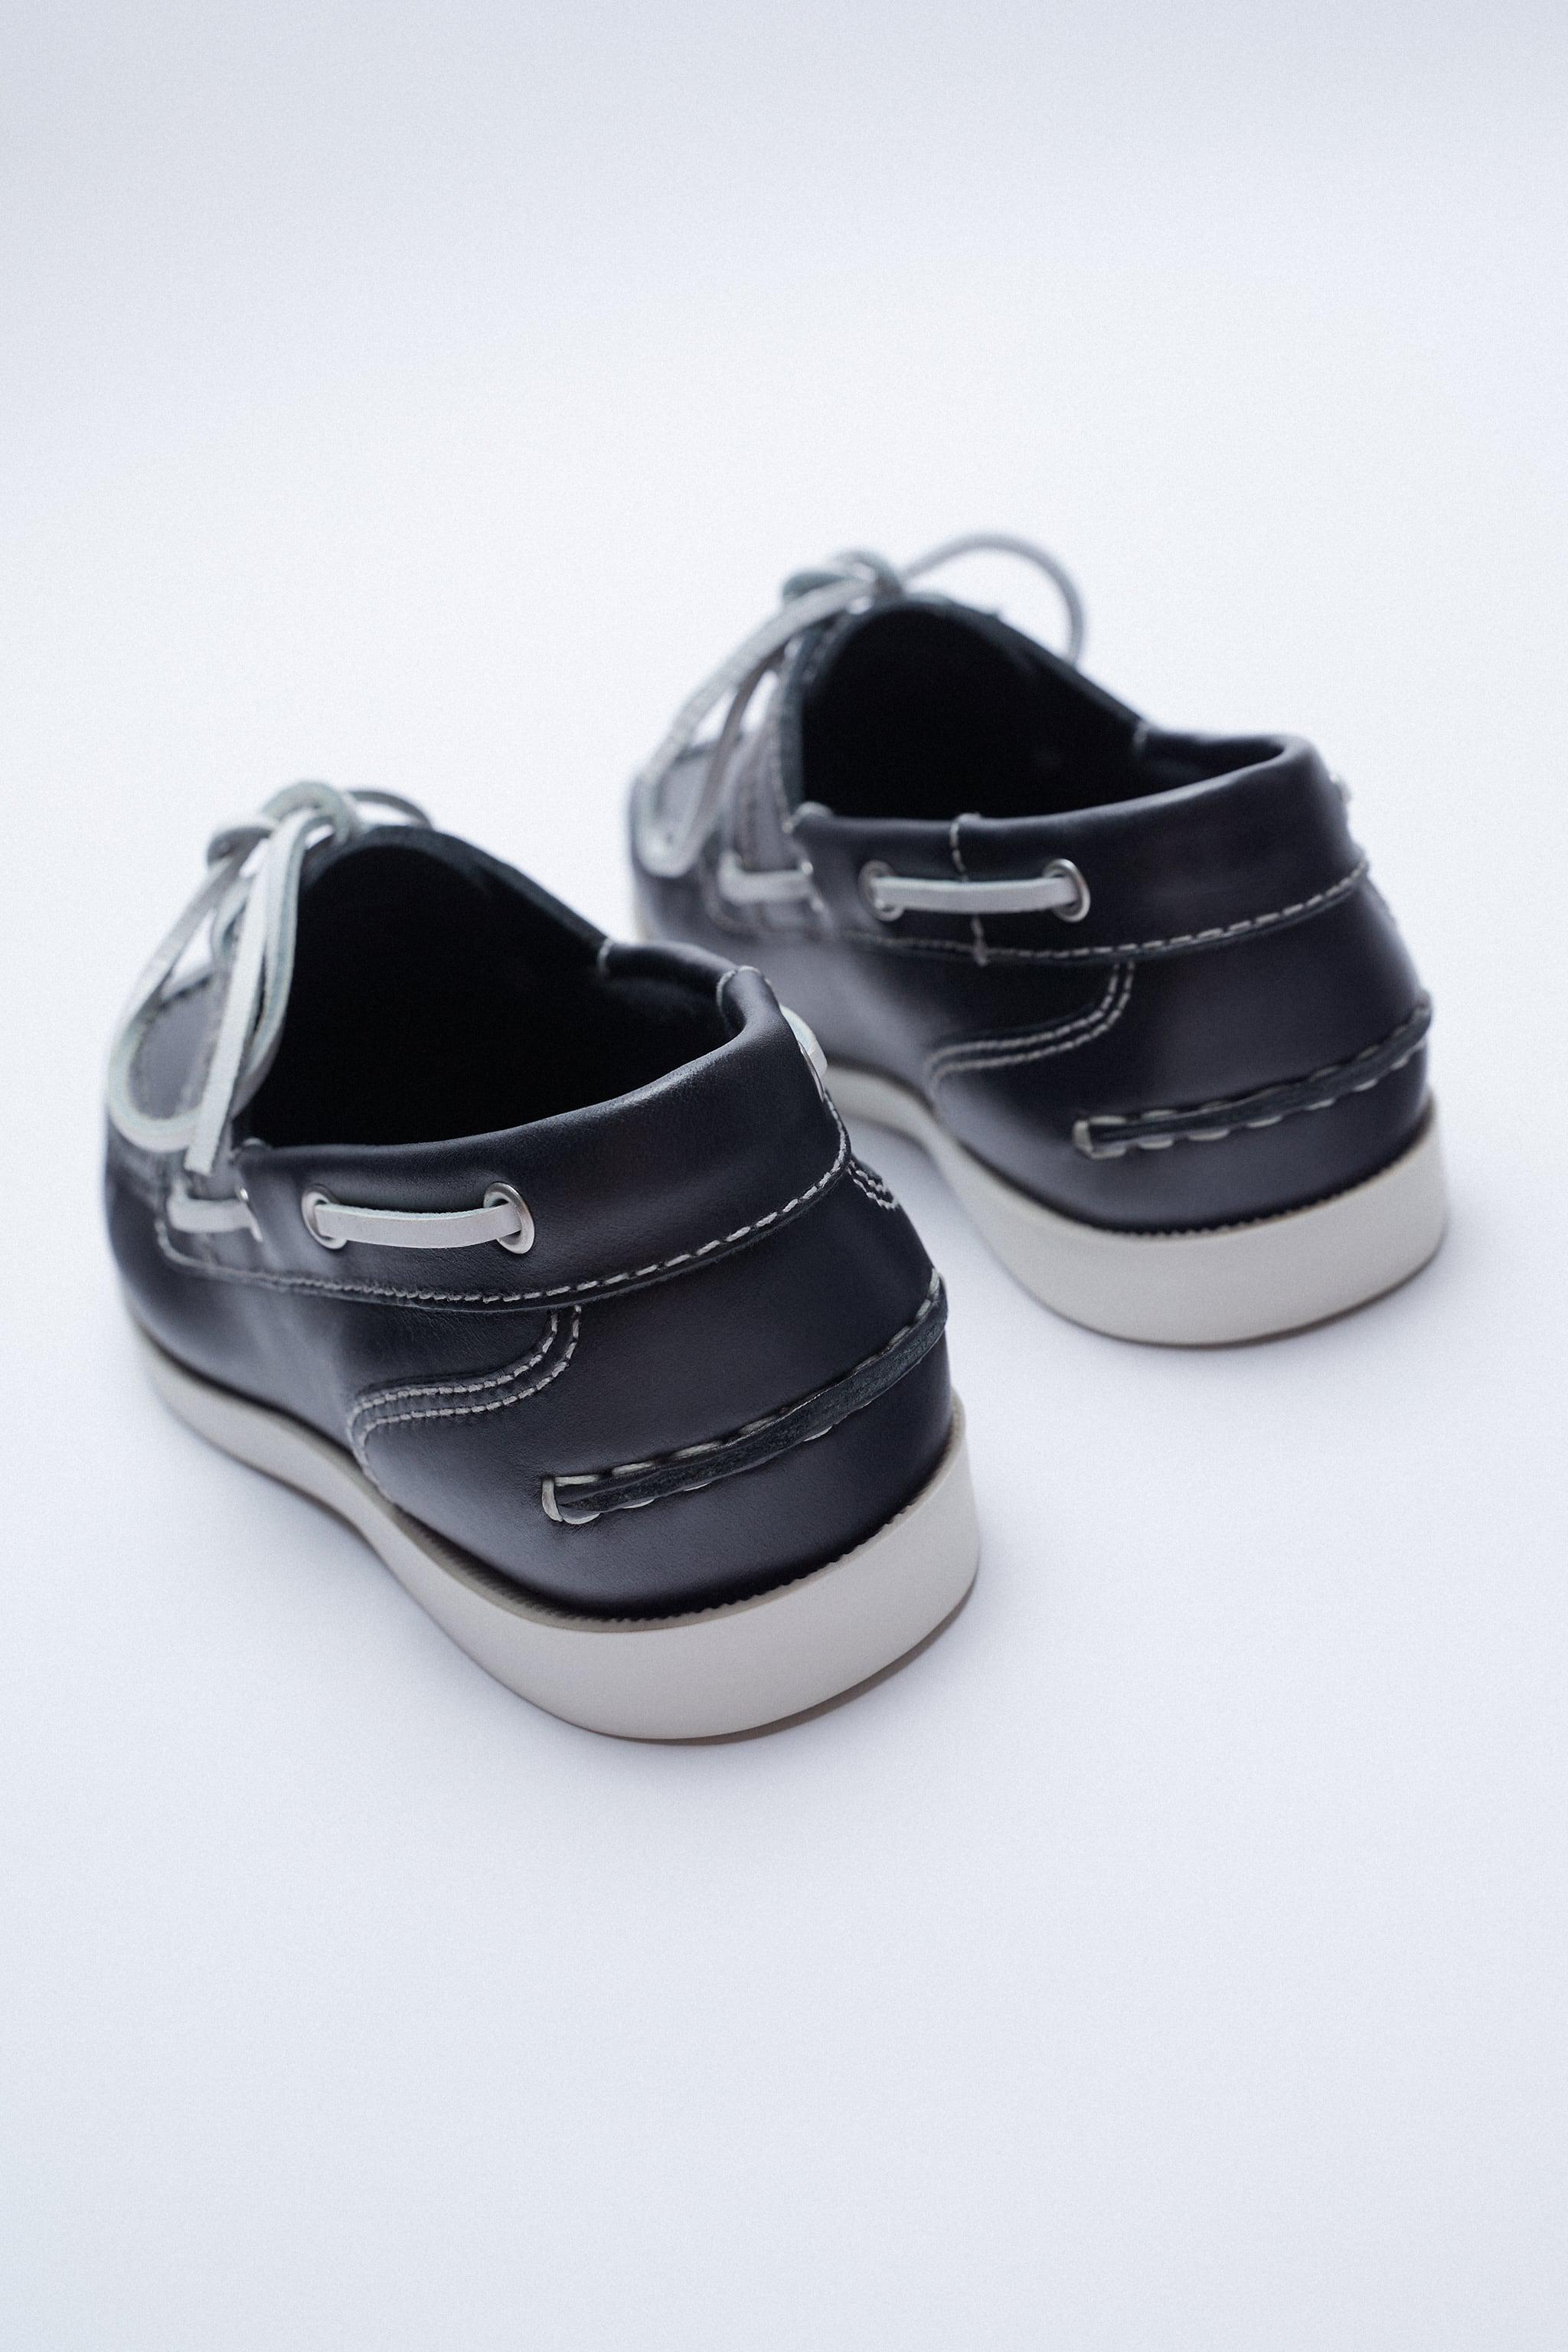 LOW HEEL LEATHER BOAT SHOES 5